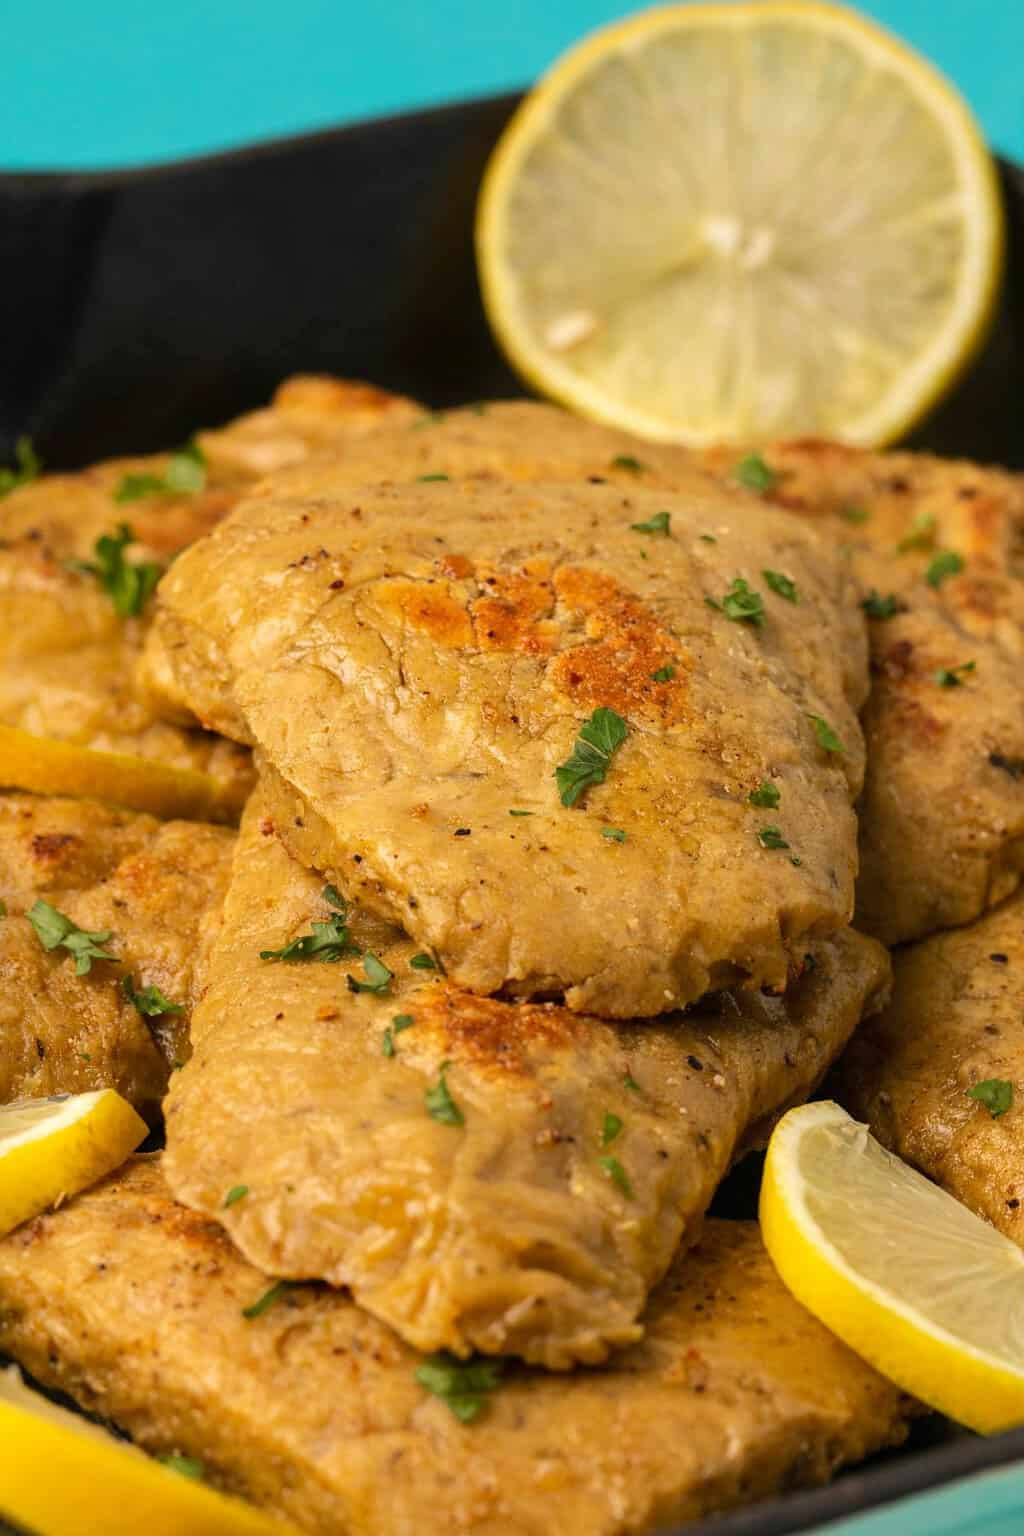 Vegan chicken fillets topped with chopped parsley and fresh lemon slices.